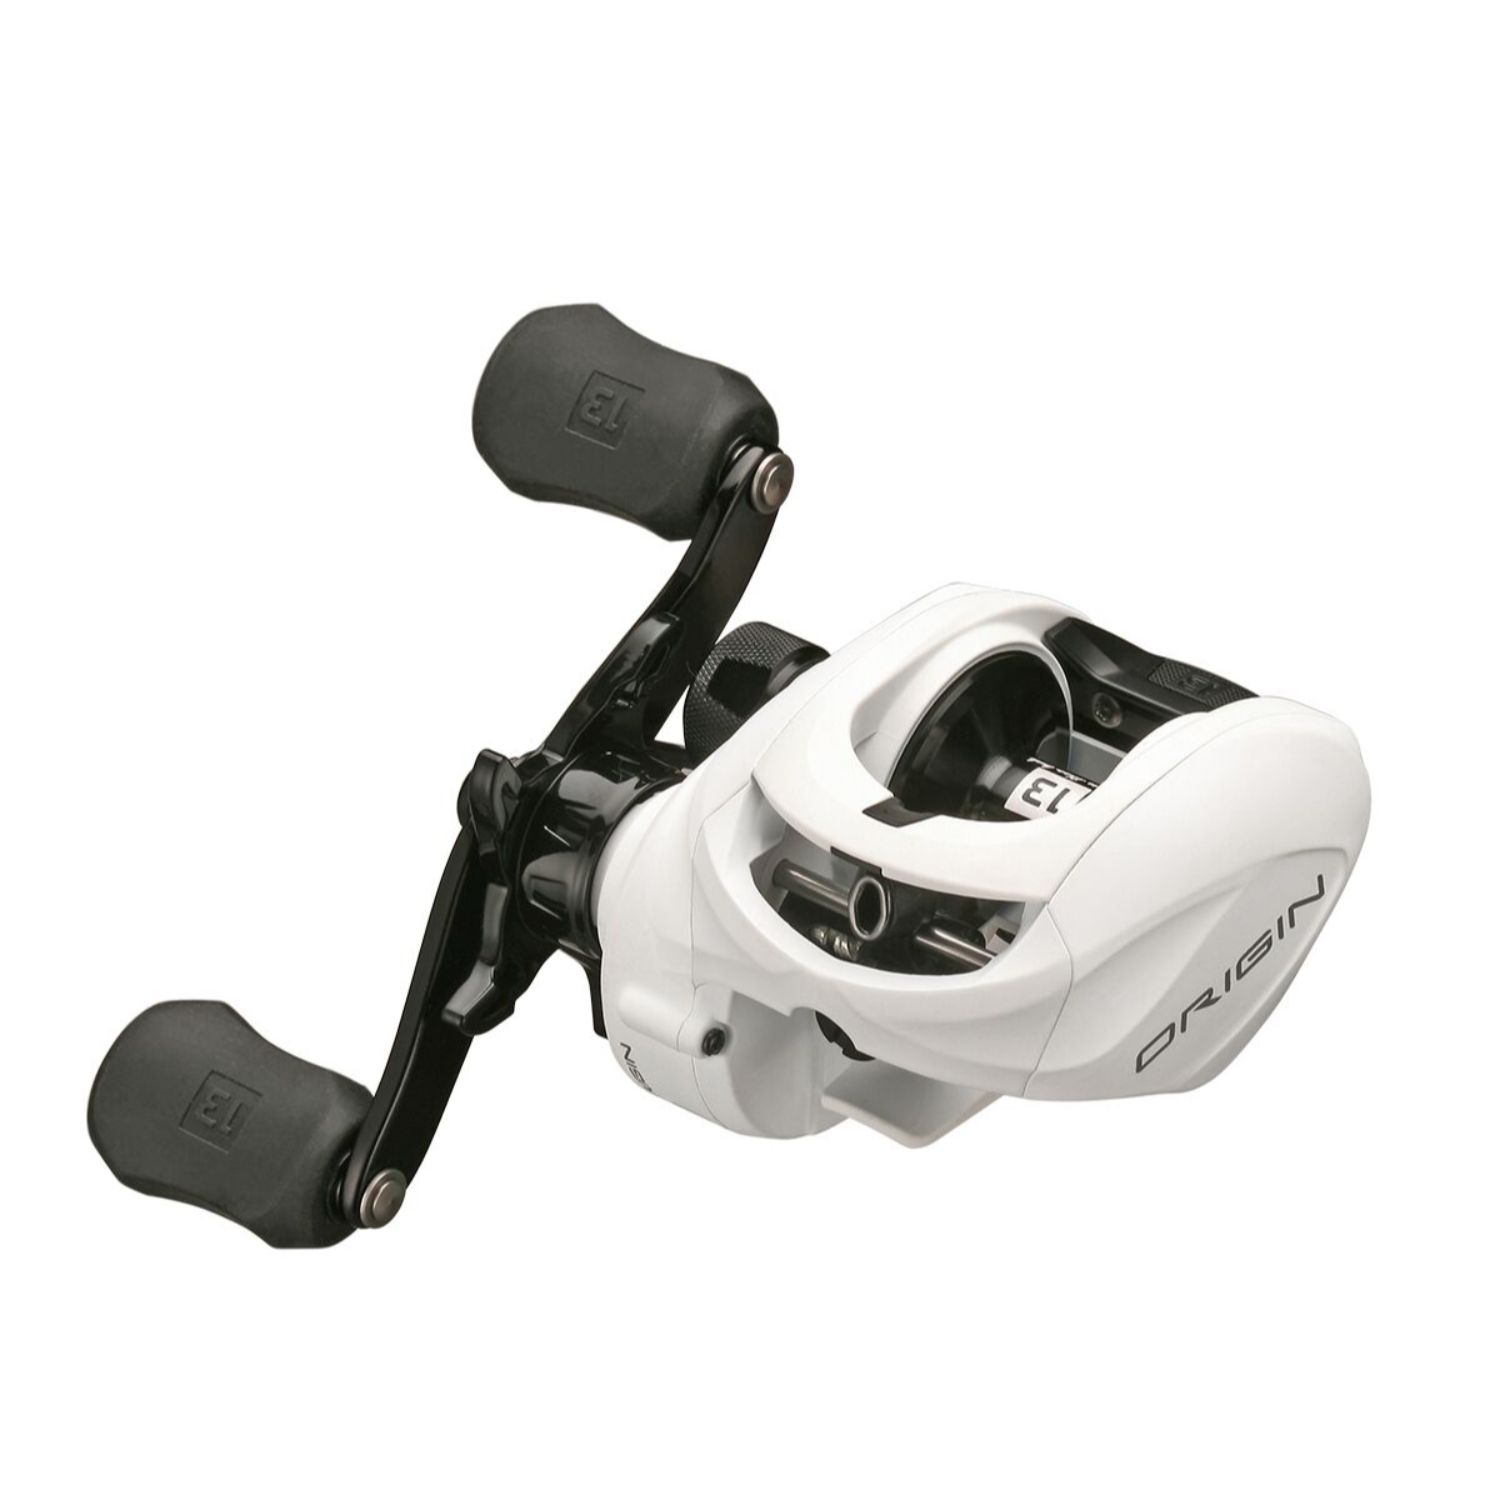 13 Fishing ORIGIN C Baitcast Reel 6.6:1 LH